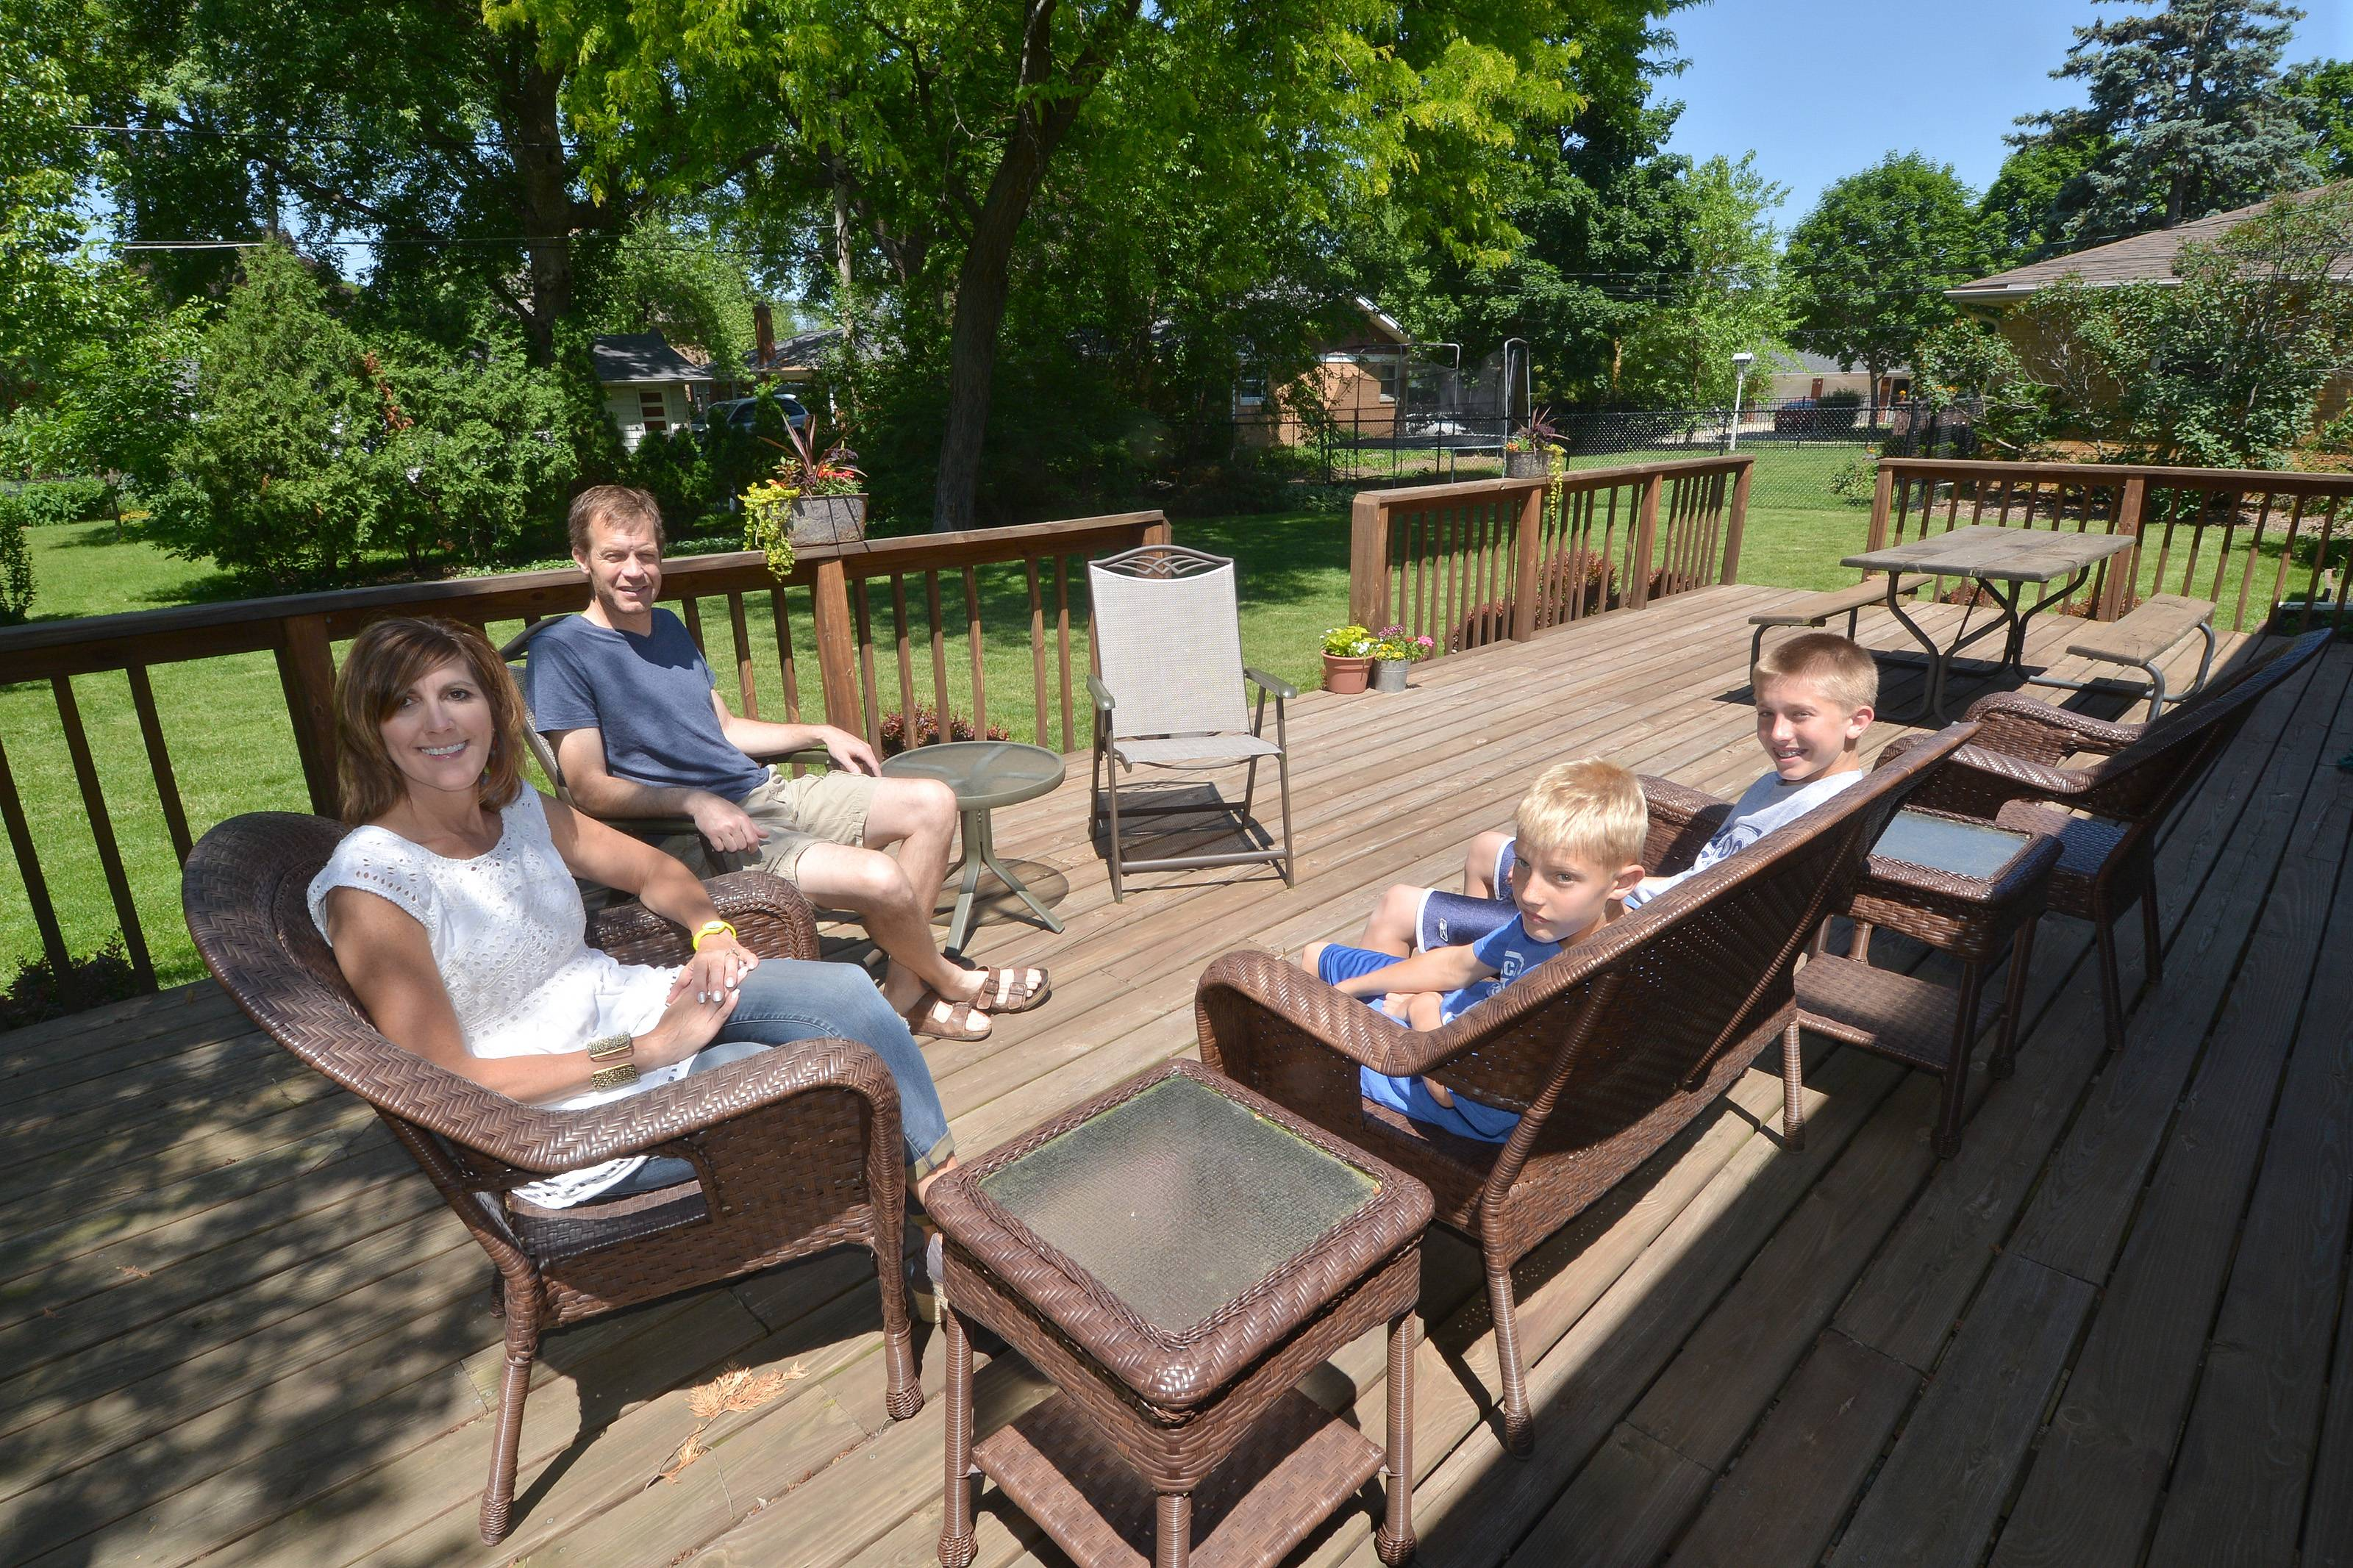 Susan Sampson, of Itasca, placed second in the Get your Summer On makeover contest. The family will be getting a makeover for the deck of their house this summer. From left: Susan Sampson, Pete Sampson, Jack Sampson, and Bob Sampson. Not pictured is Anna Sampson.